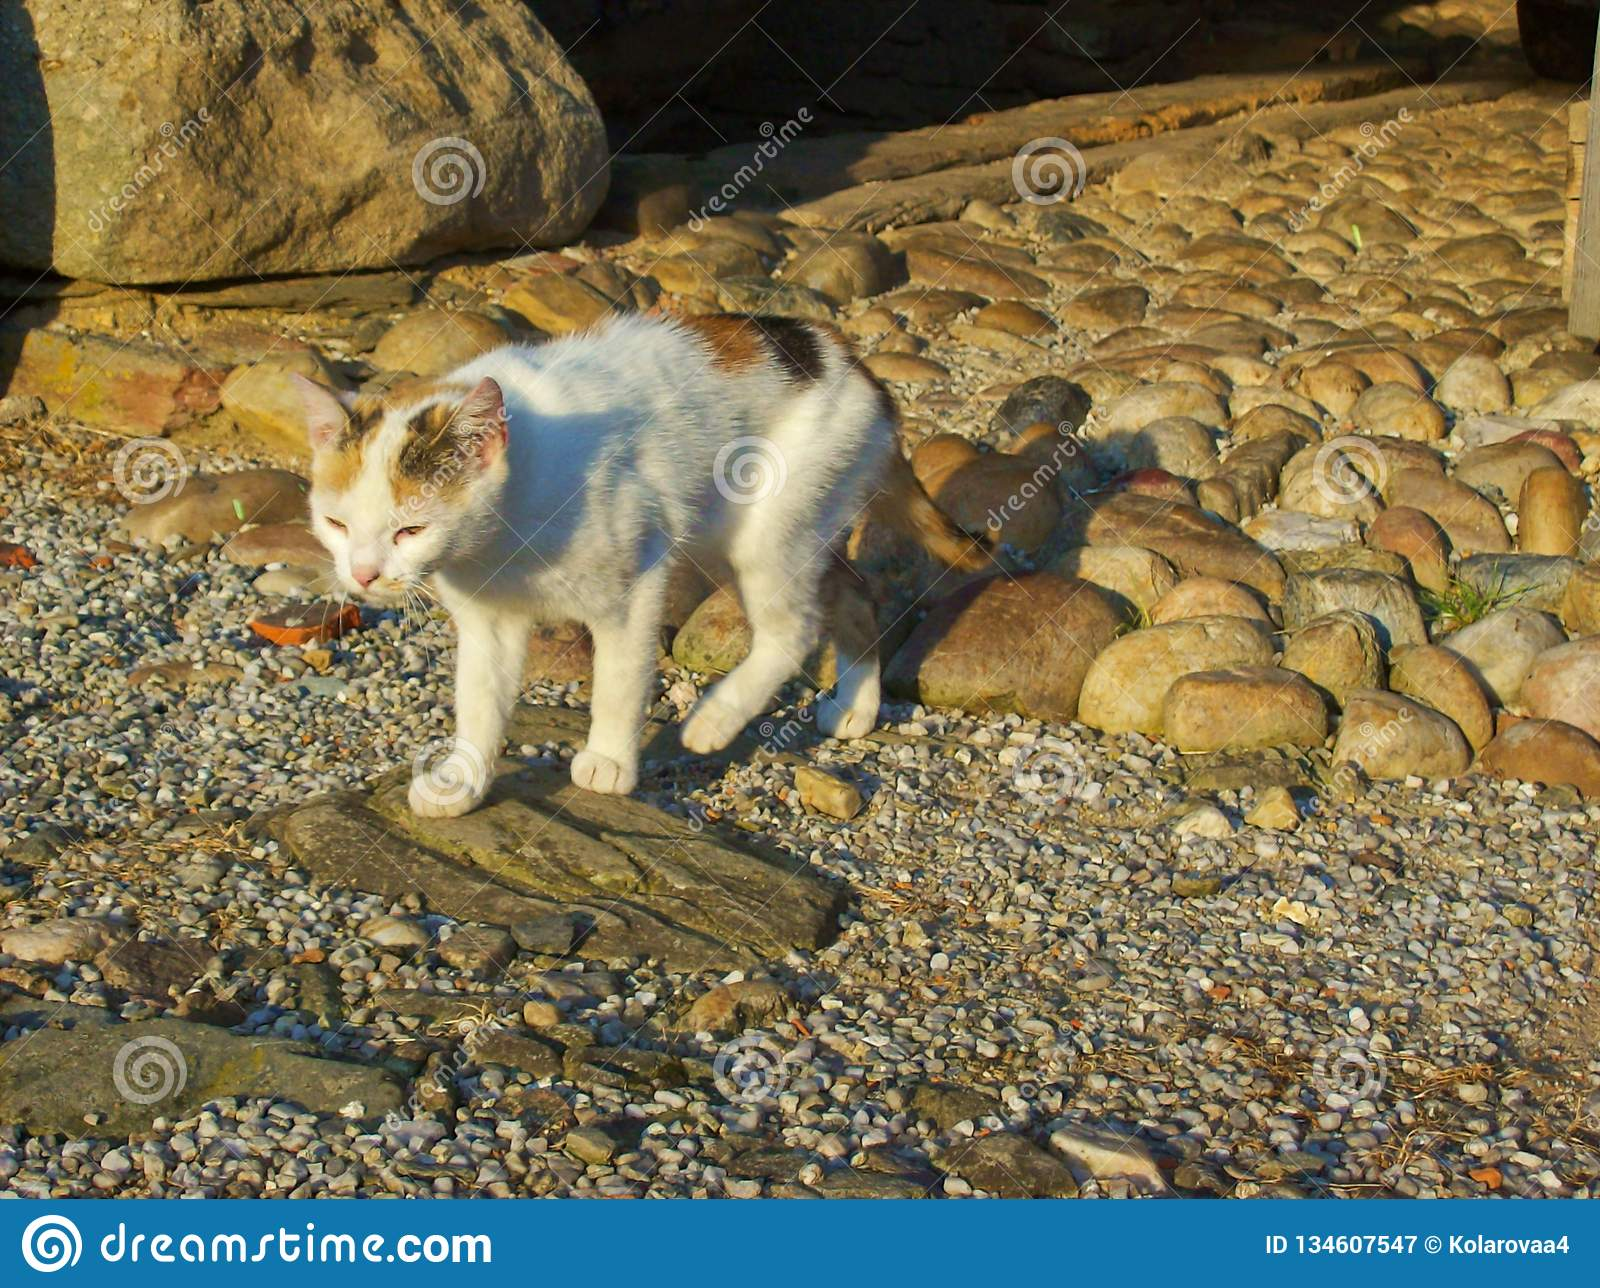 Cute cat with tricolor fur is walking along the way to the garden